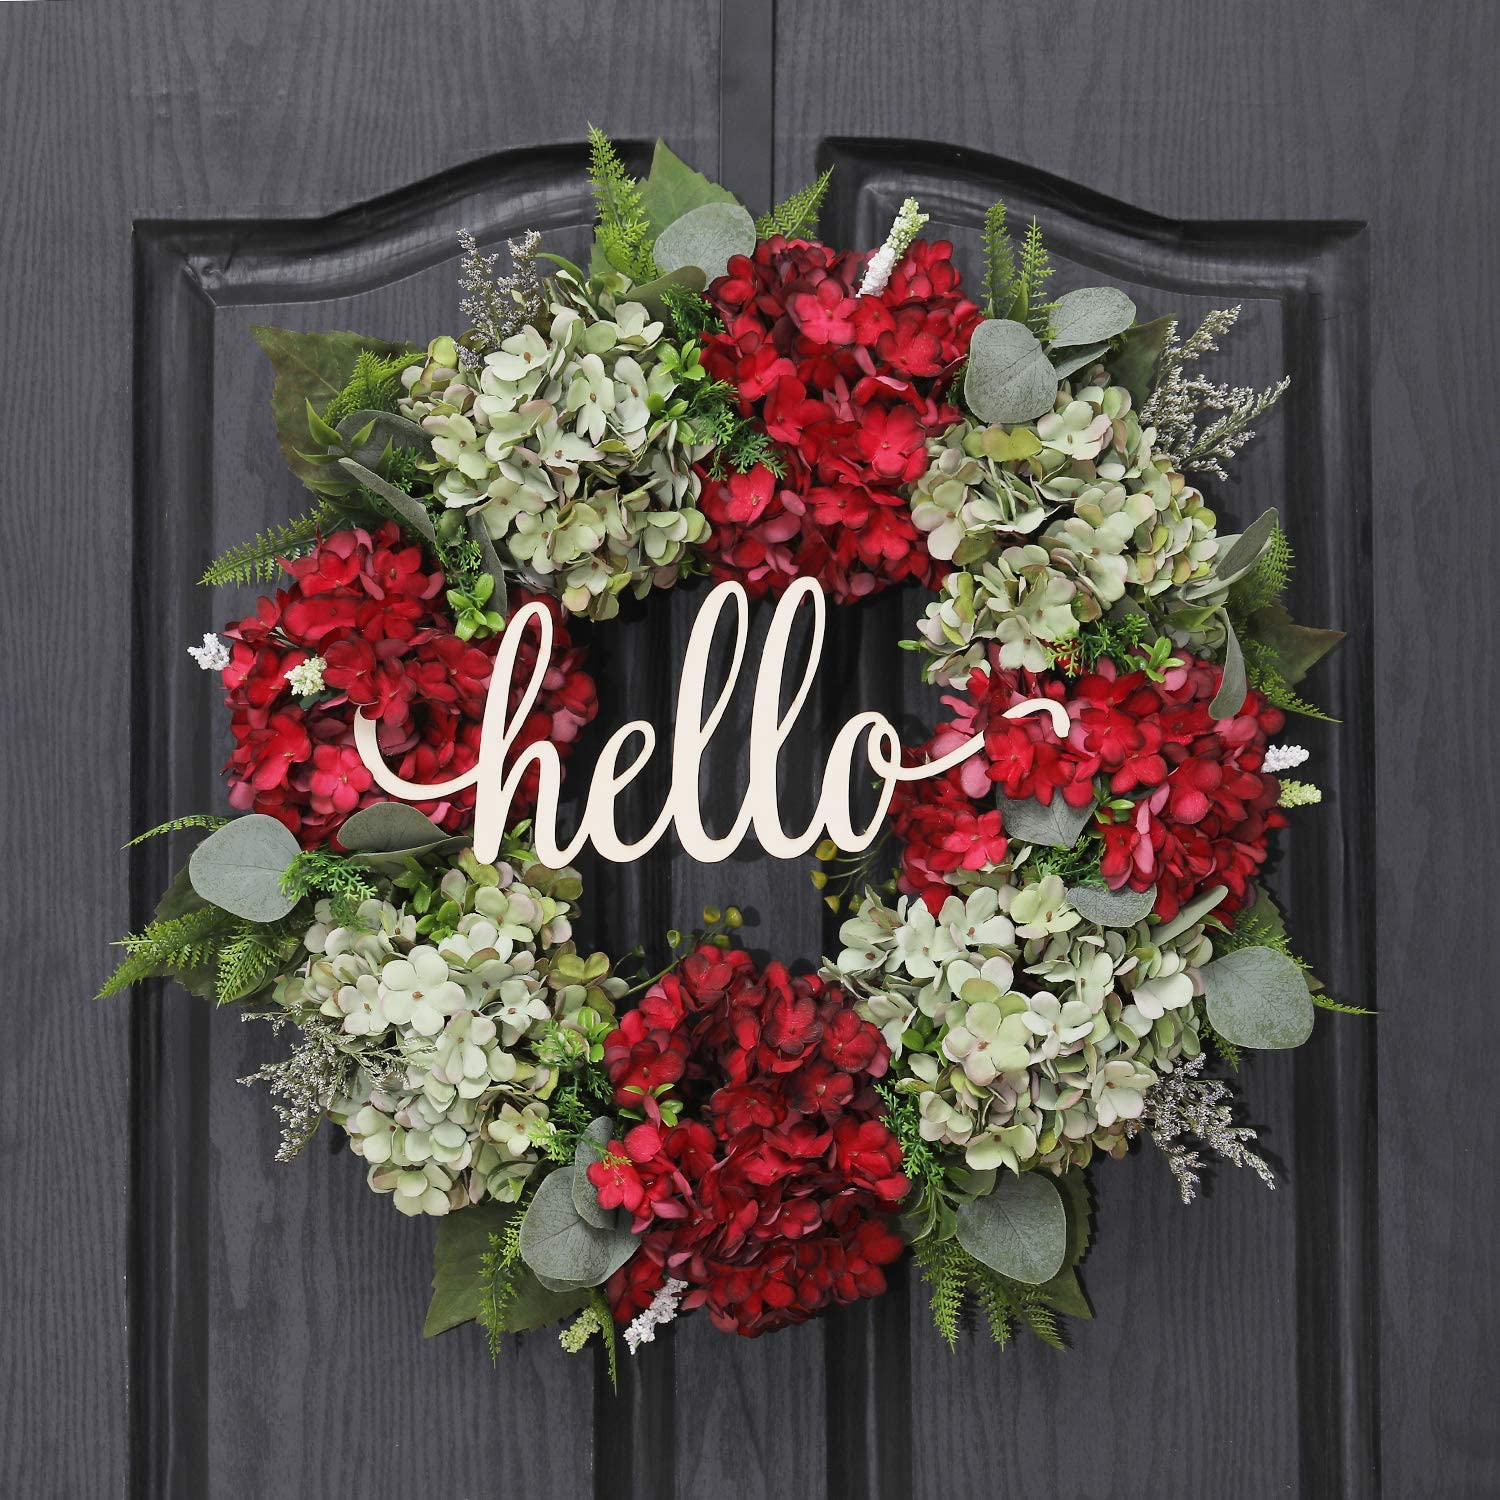 QUNWREATH Handmade Floral 18 inch Green Red Hydrangea Series Wreath,Gifts Package,Free Hooks,Front Door Rustic Wreath,Farmhouse Grapevine Wreath,Light up Wreath,Everyday Hello Wreath,QUNW52